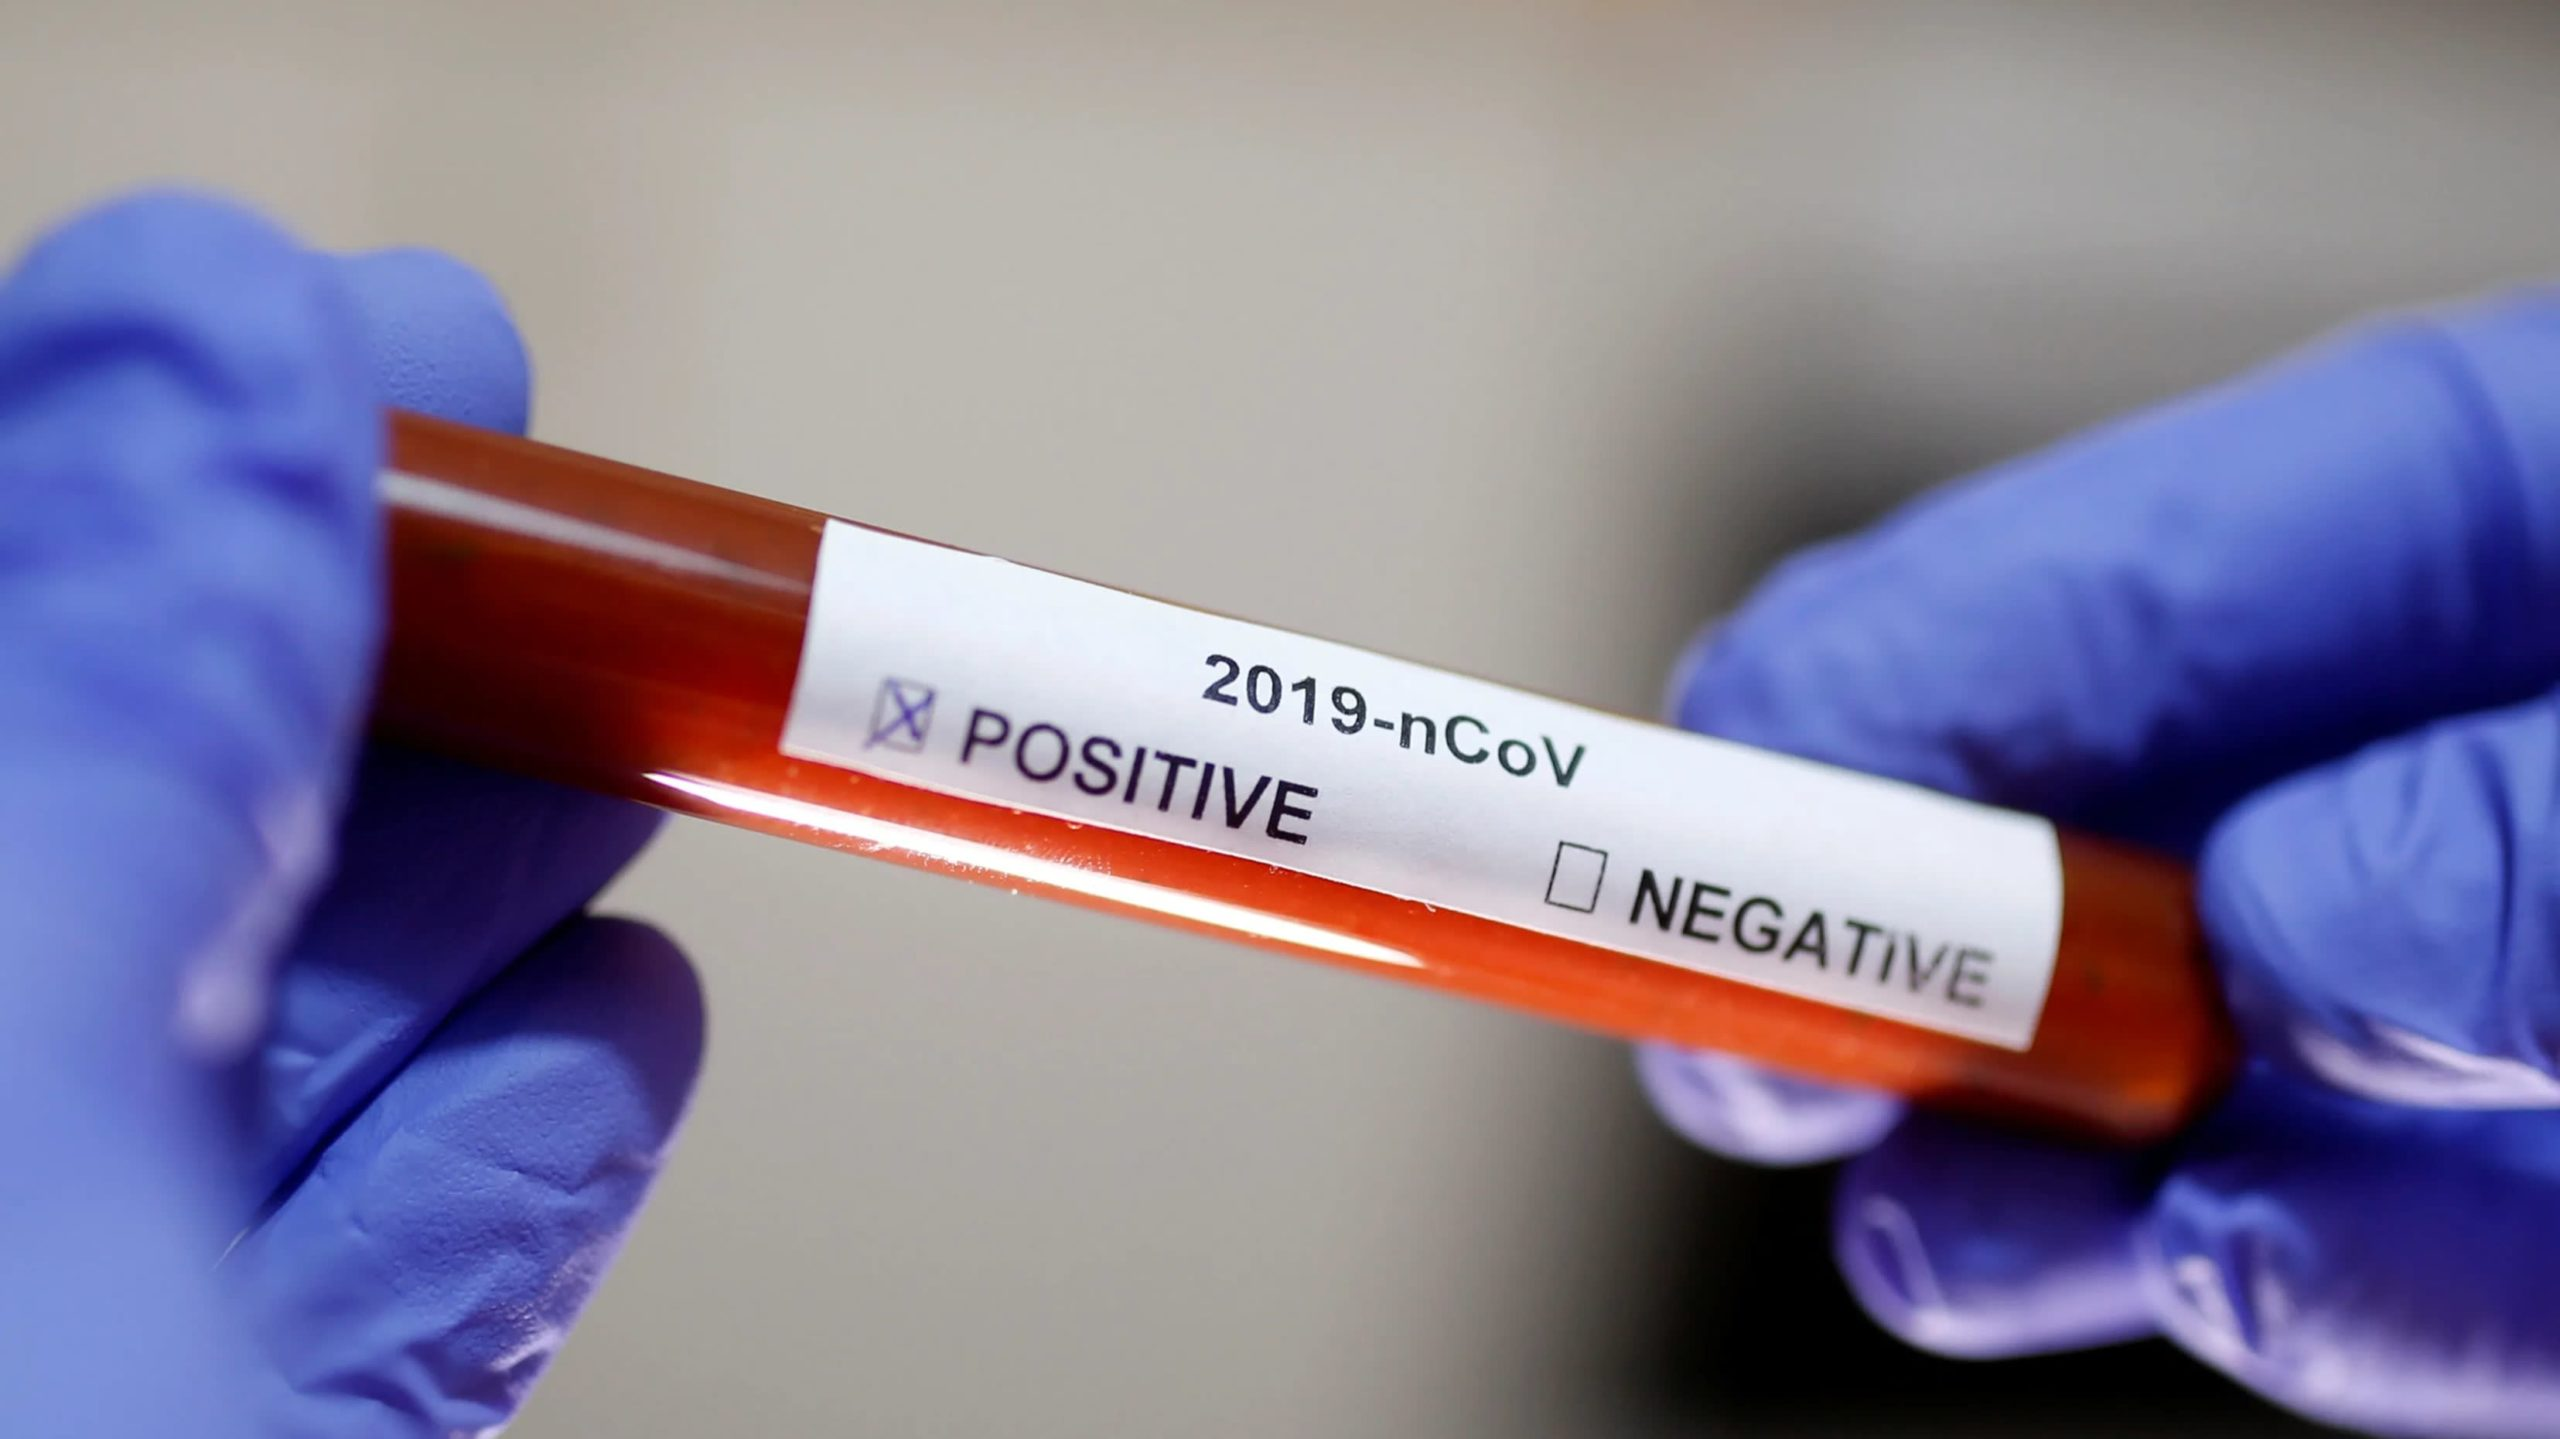 South Korean firm develop a test that detects coronavirus in 10 minutes